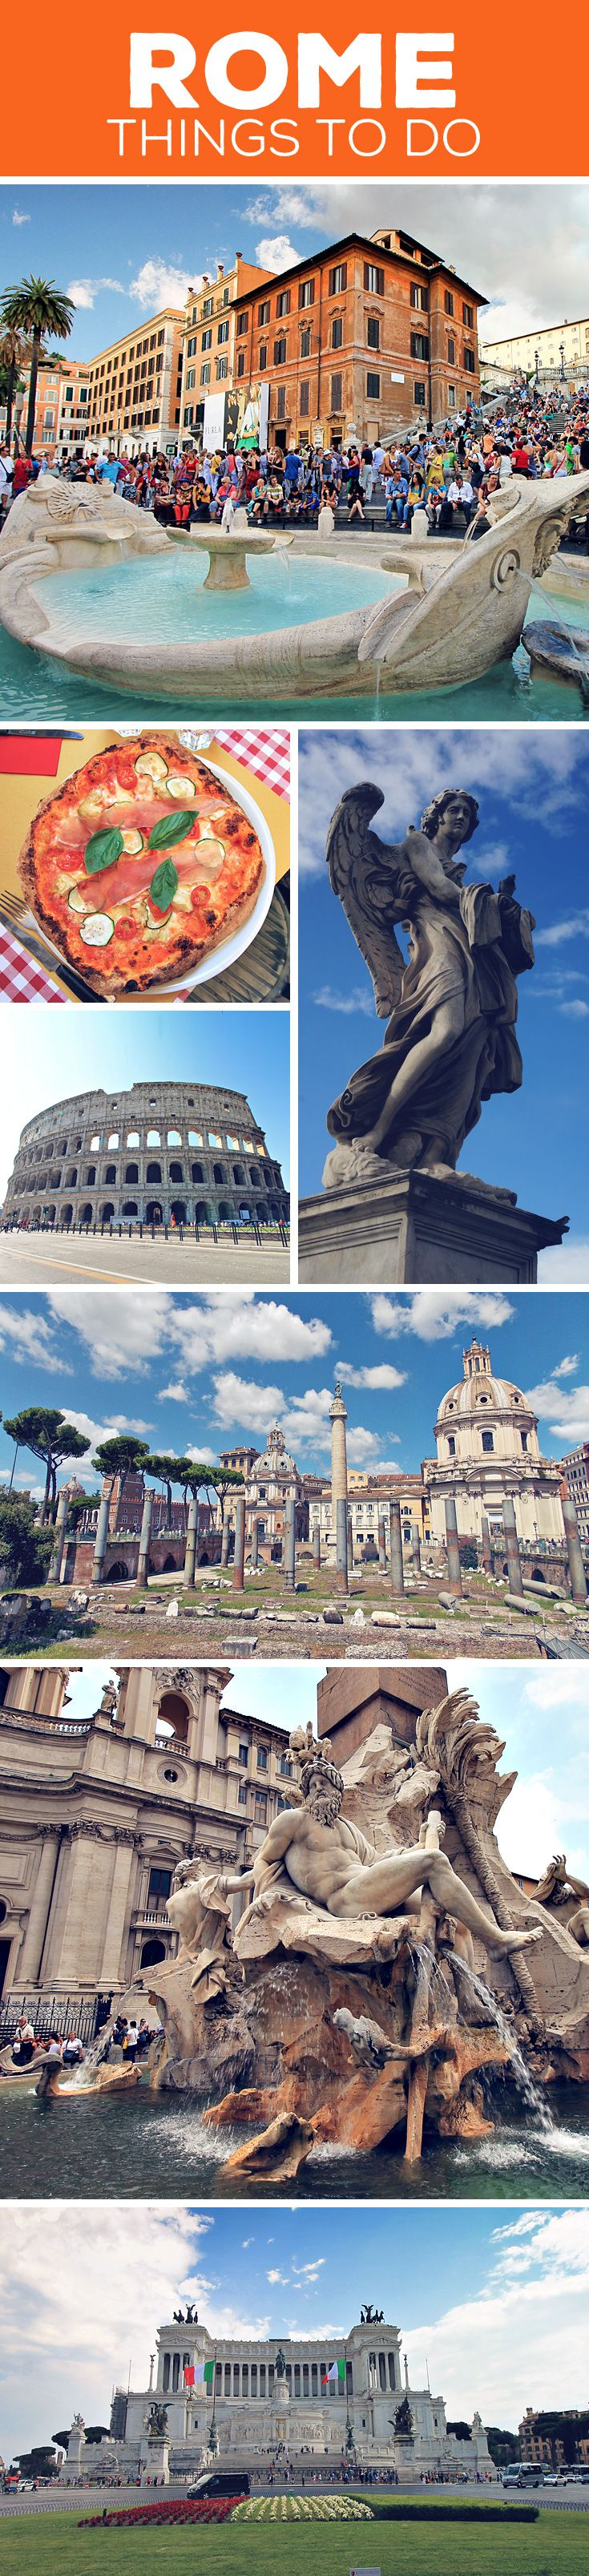 Sightseeing Tips And Things To Do In Rome, Italy: Colosseum  Pantheon   Roman